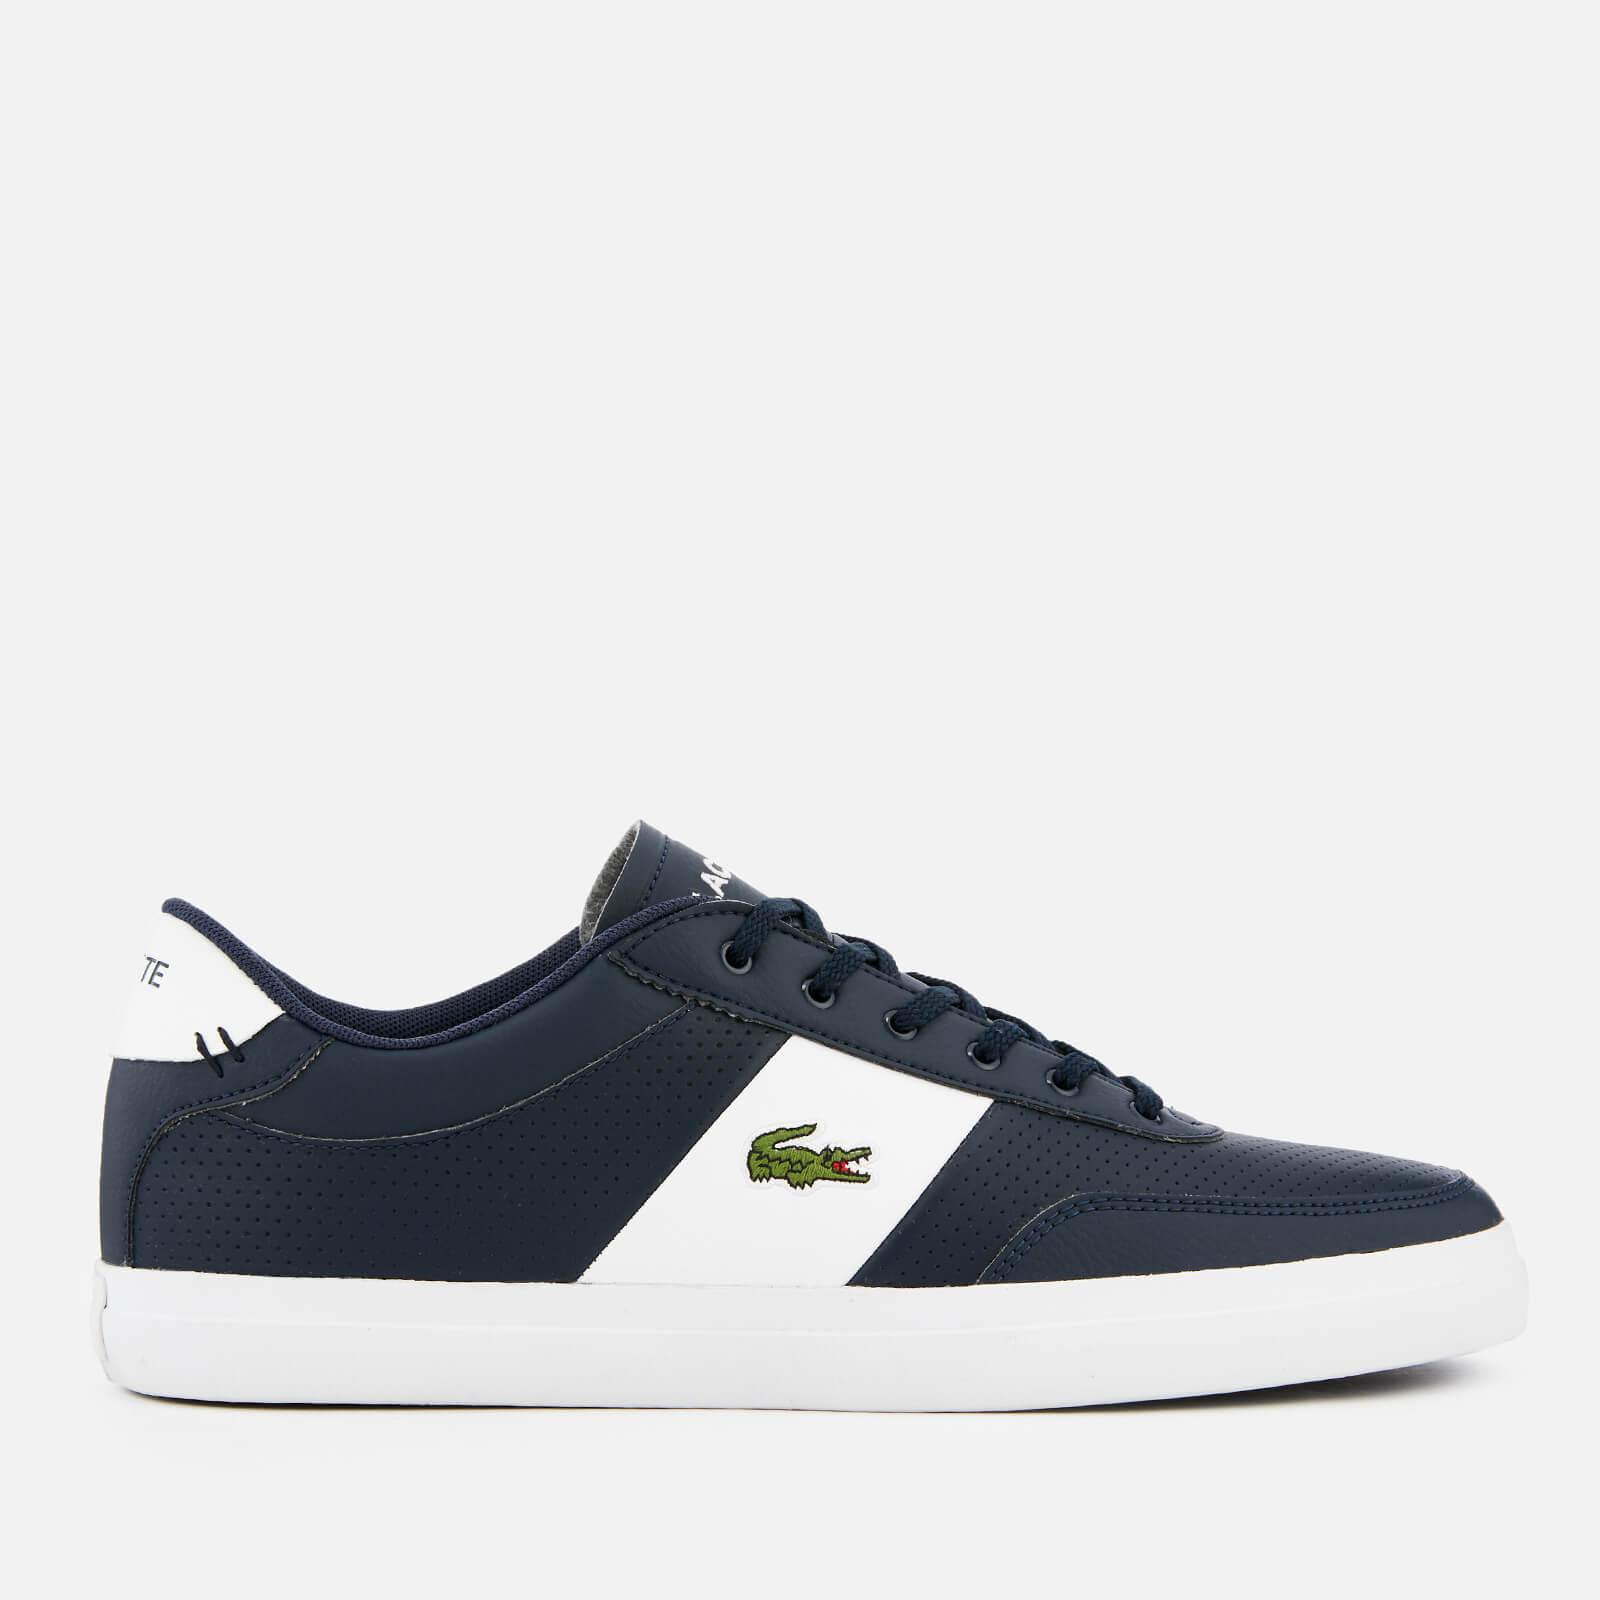 Lacoste COURT-MASTER 119 2 Mens Lace Up Casual Low Top Retro Trainers White